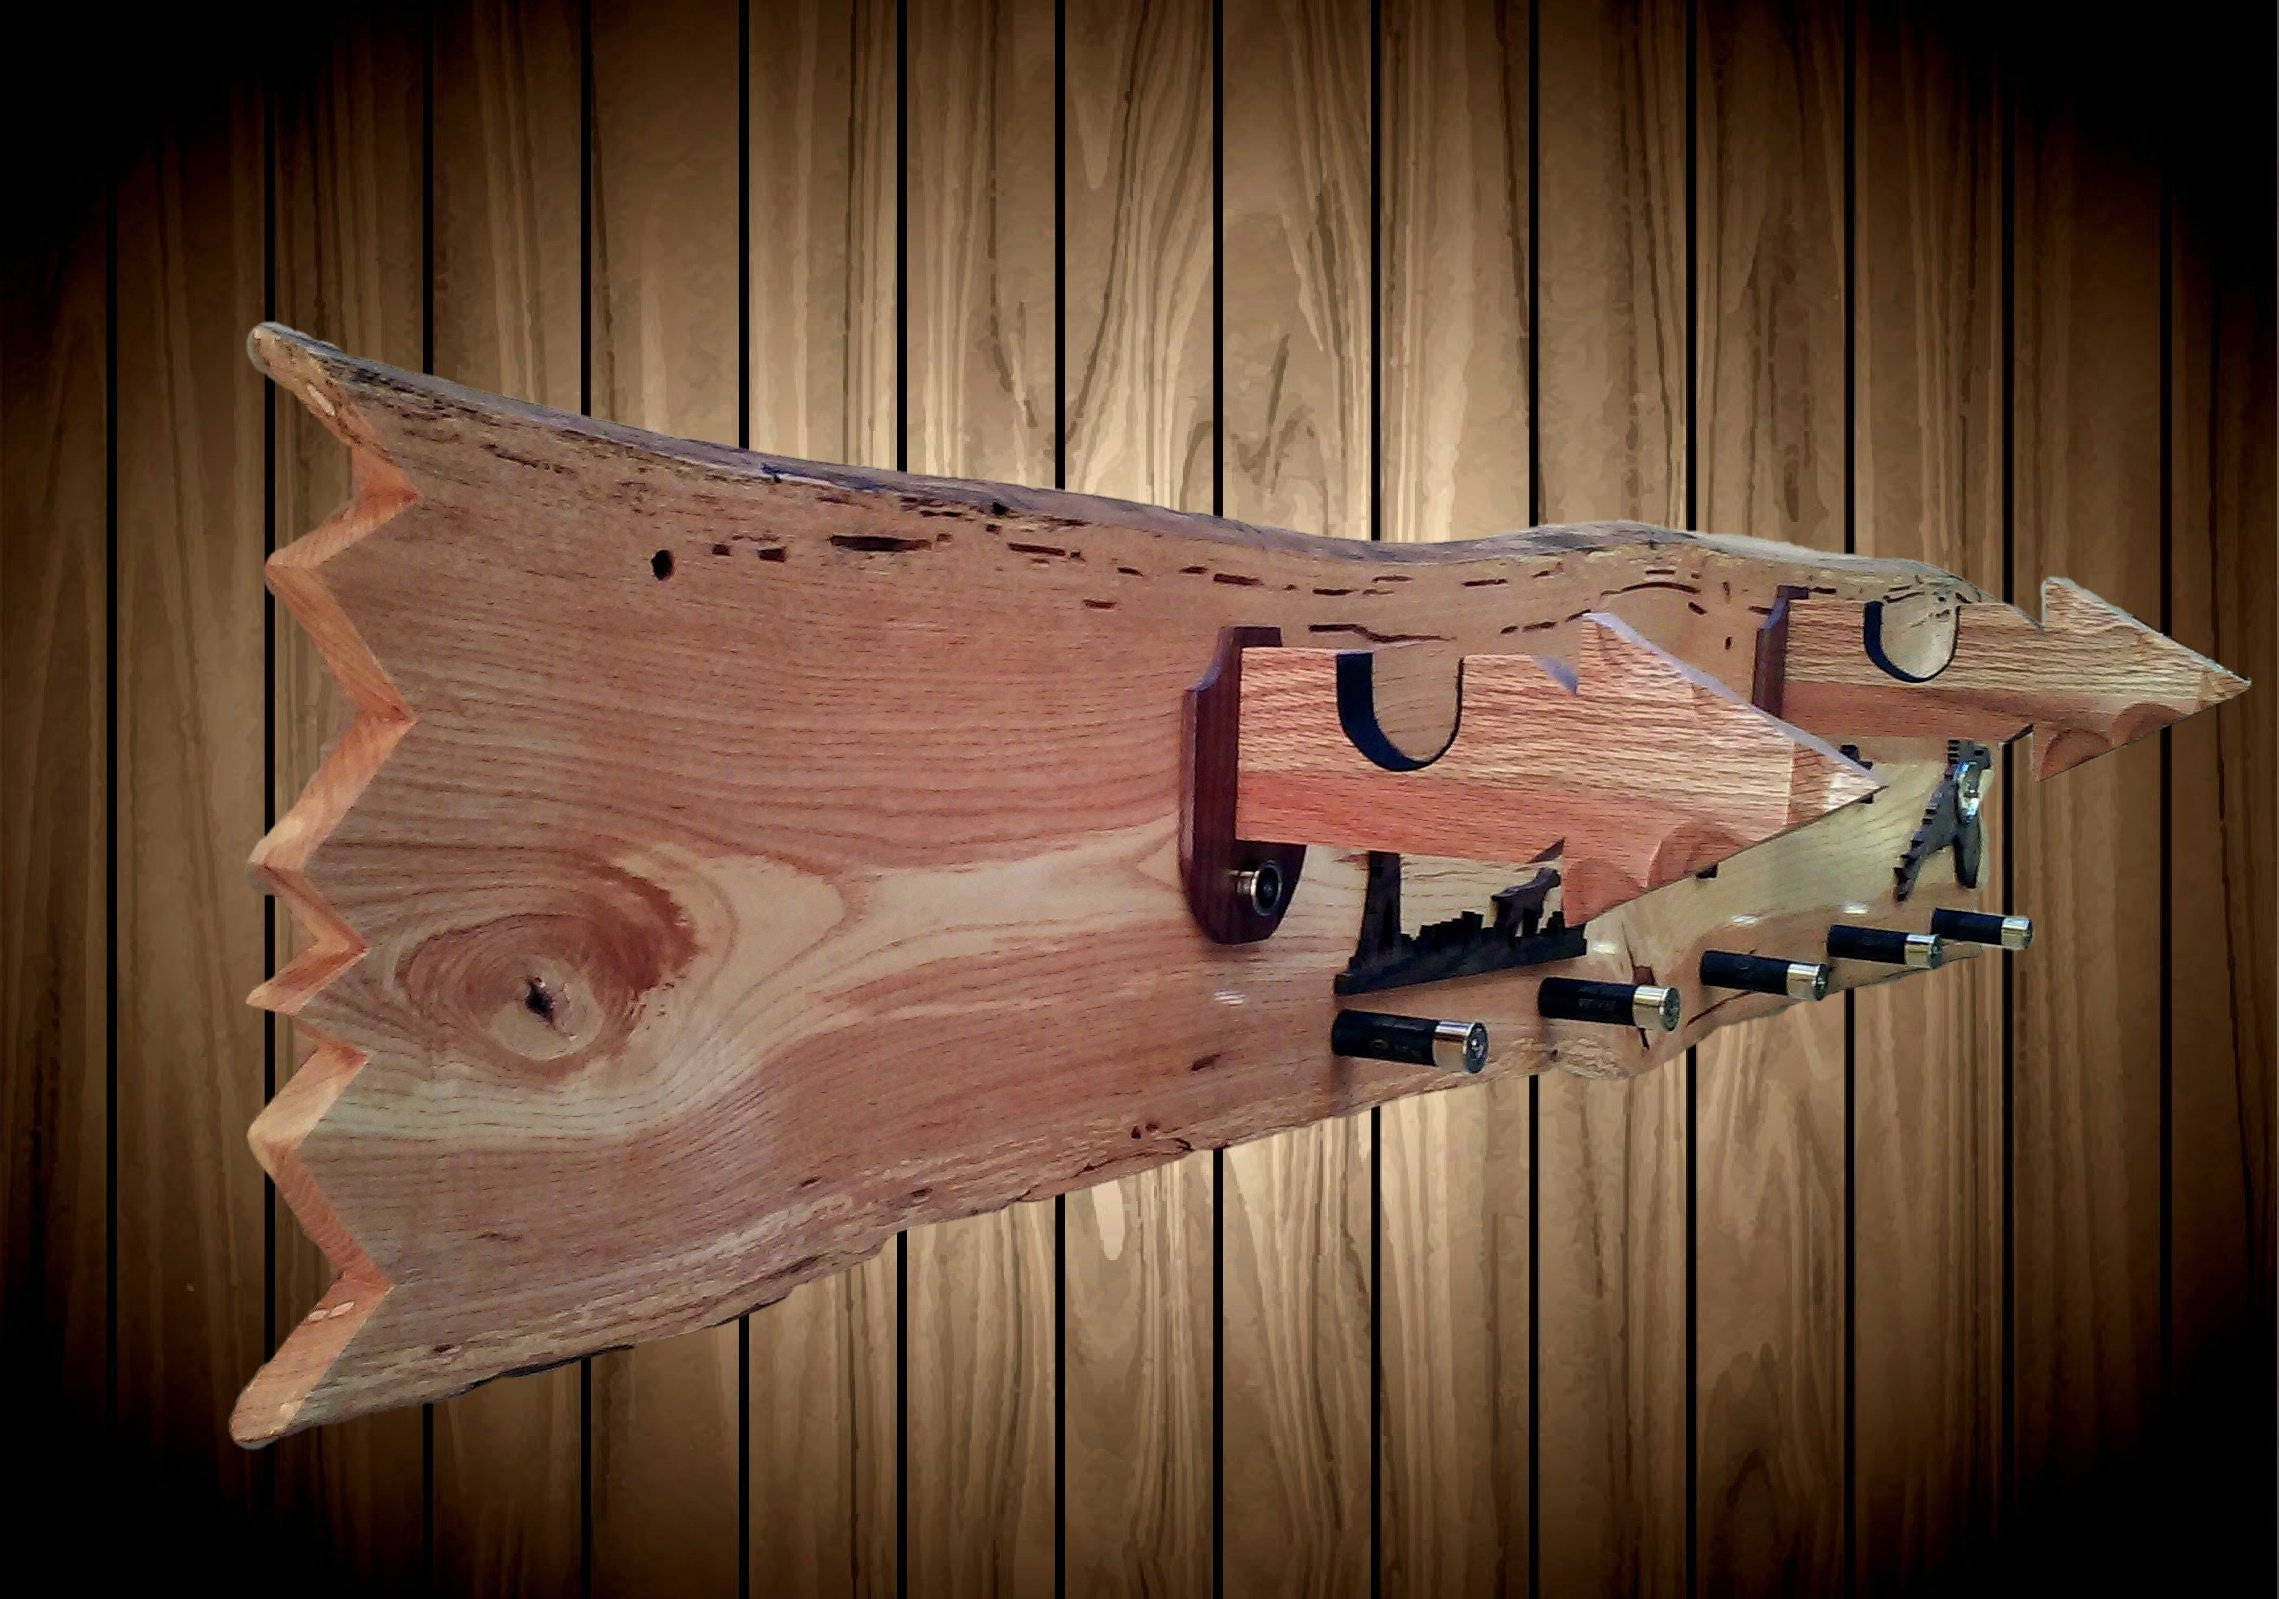 Rustic Live Edge Ash Wood Wall Decor Gun Hat Coat Rack Oak